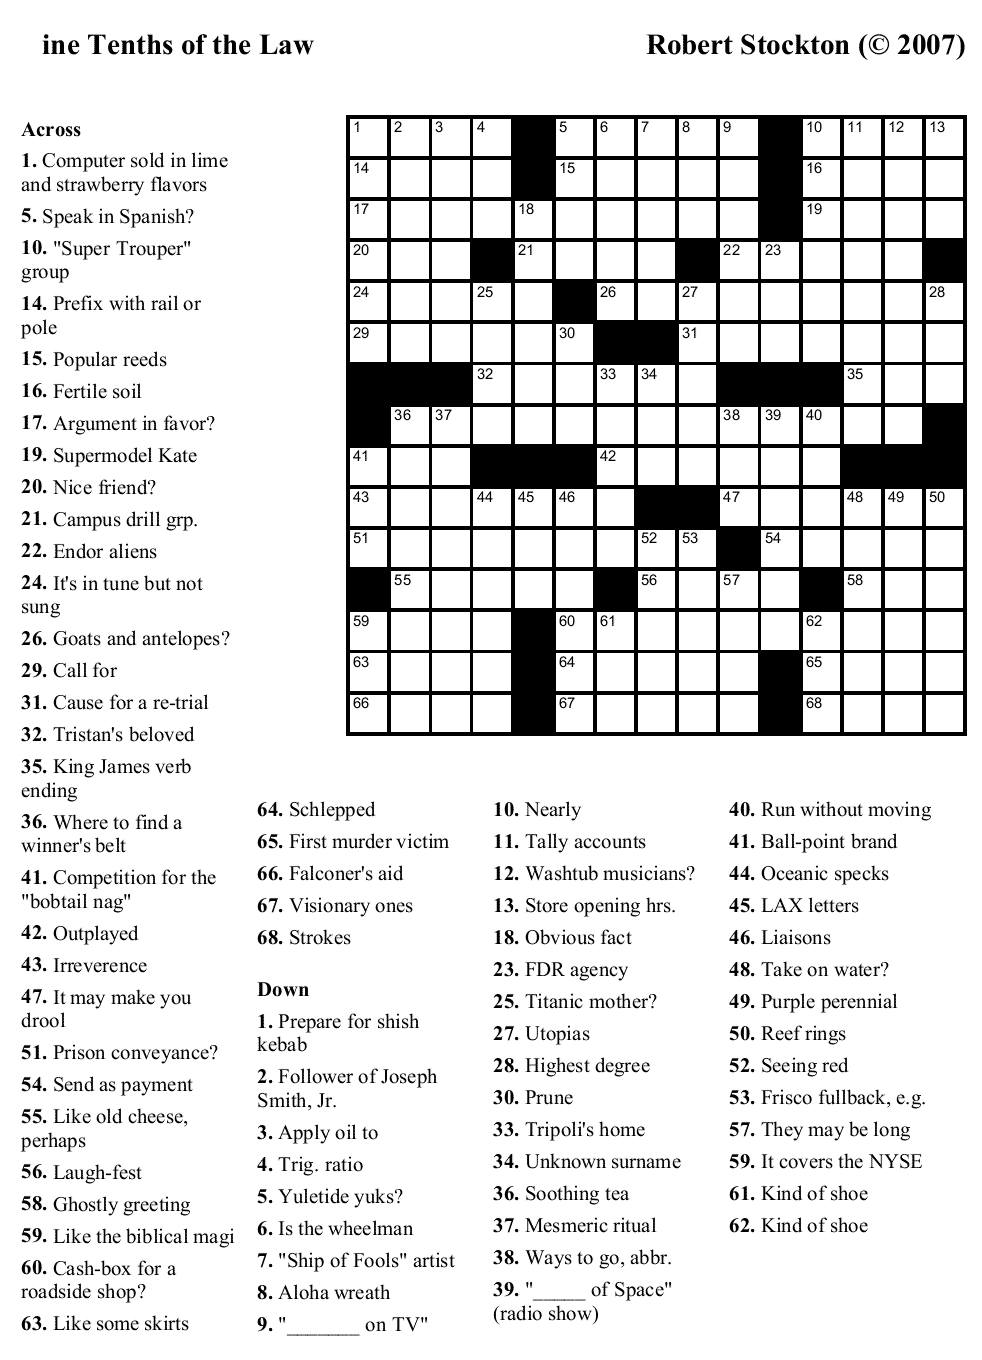 Crossword Puzzles Printable - Yahoo Image Search Results | Crossword - Free Printable Crossword Puzzle #1